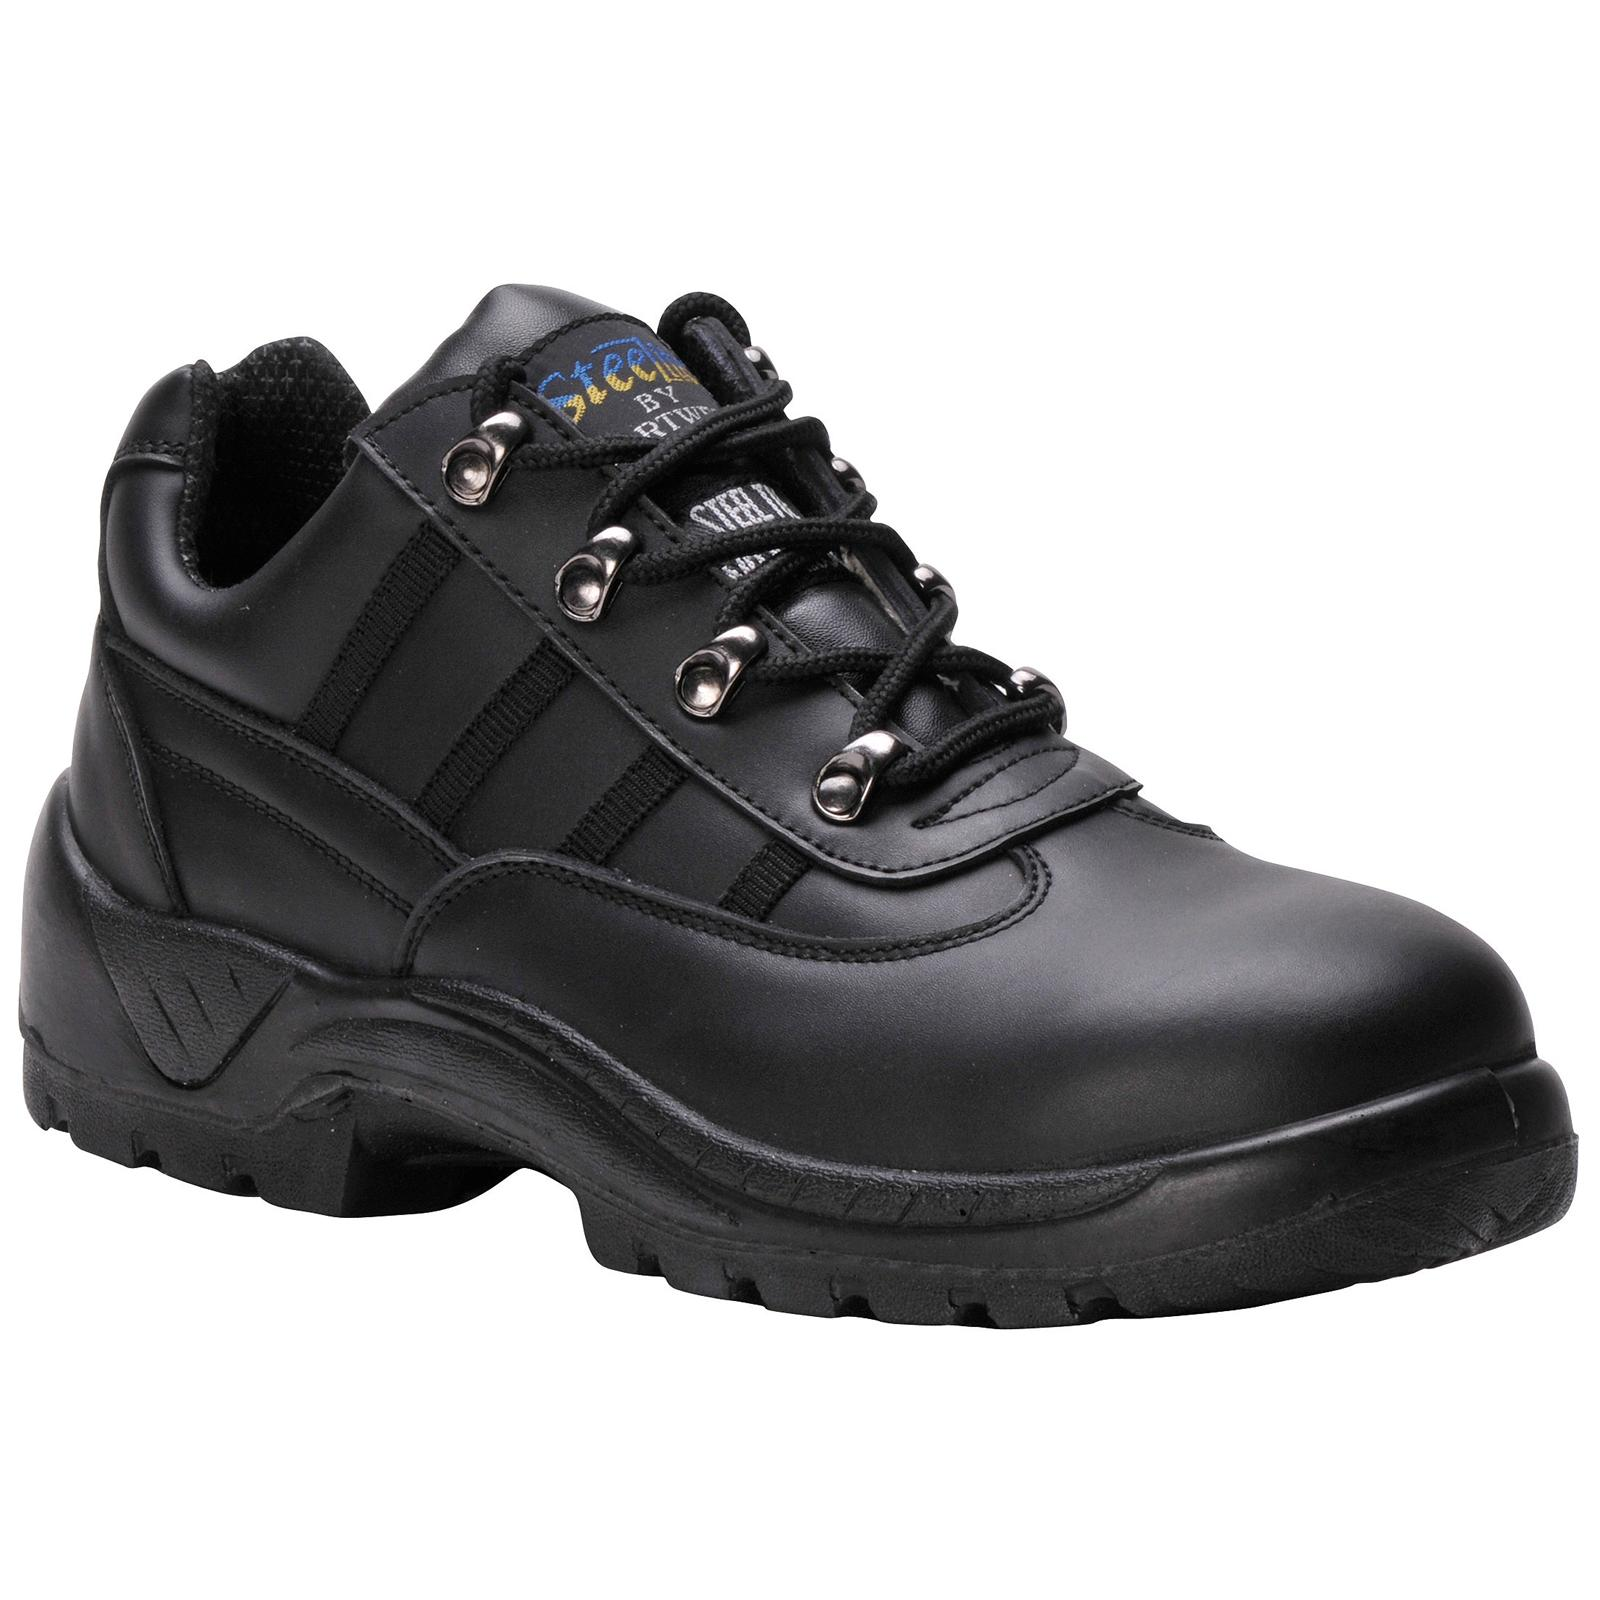 New-PORTWEST-Mens-Work-Safety-Steelite-Leather-Trainer-Shoes-Black-Size-5-12